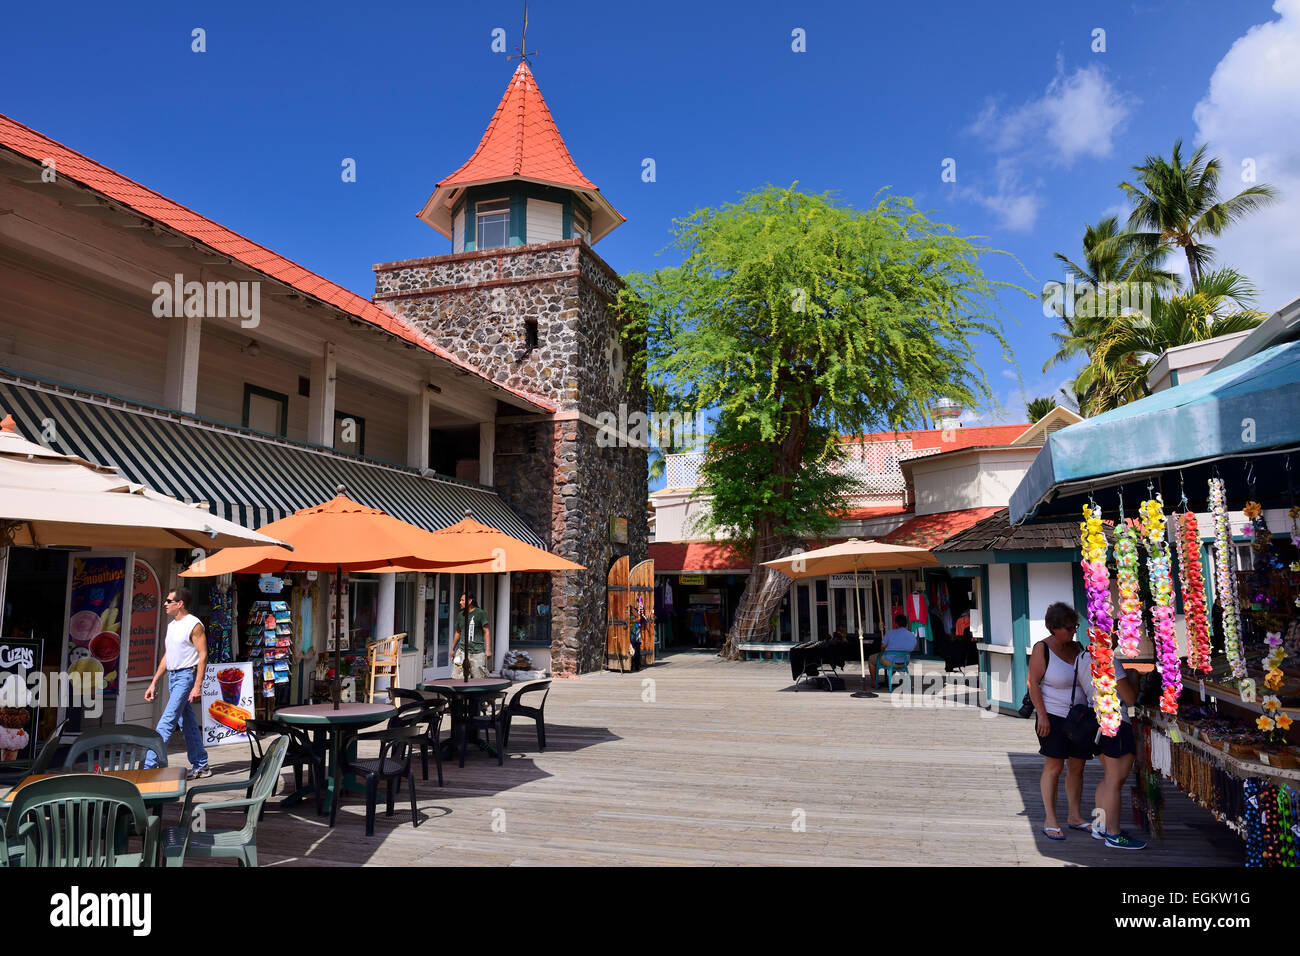 ABC Stores in Big Island Kailua-Kona, Hawaii. Convenience store chain located throughout Hawaii, catering specifically to tourists. Hawaii Travel Information - Find the best beaches, hotels, restaurants, activities, and information in the Hawaiian Islands.5/5(3).